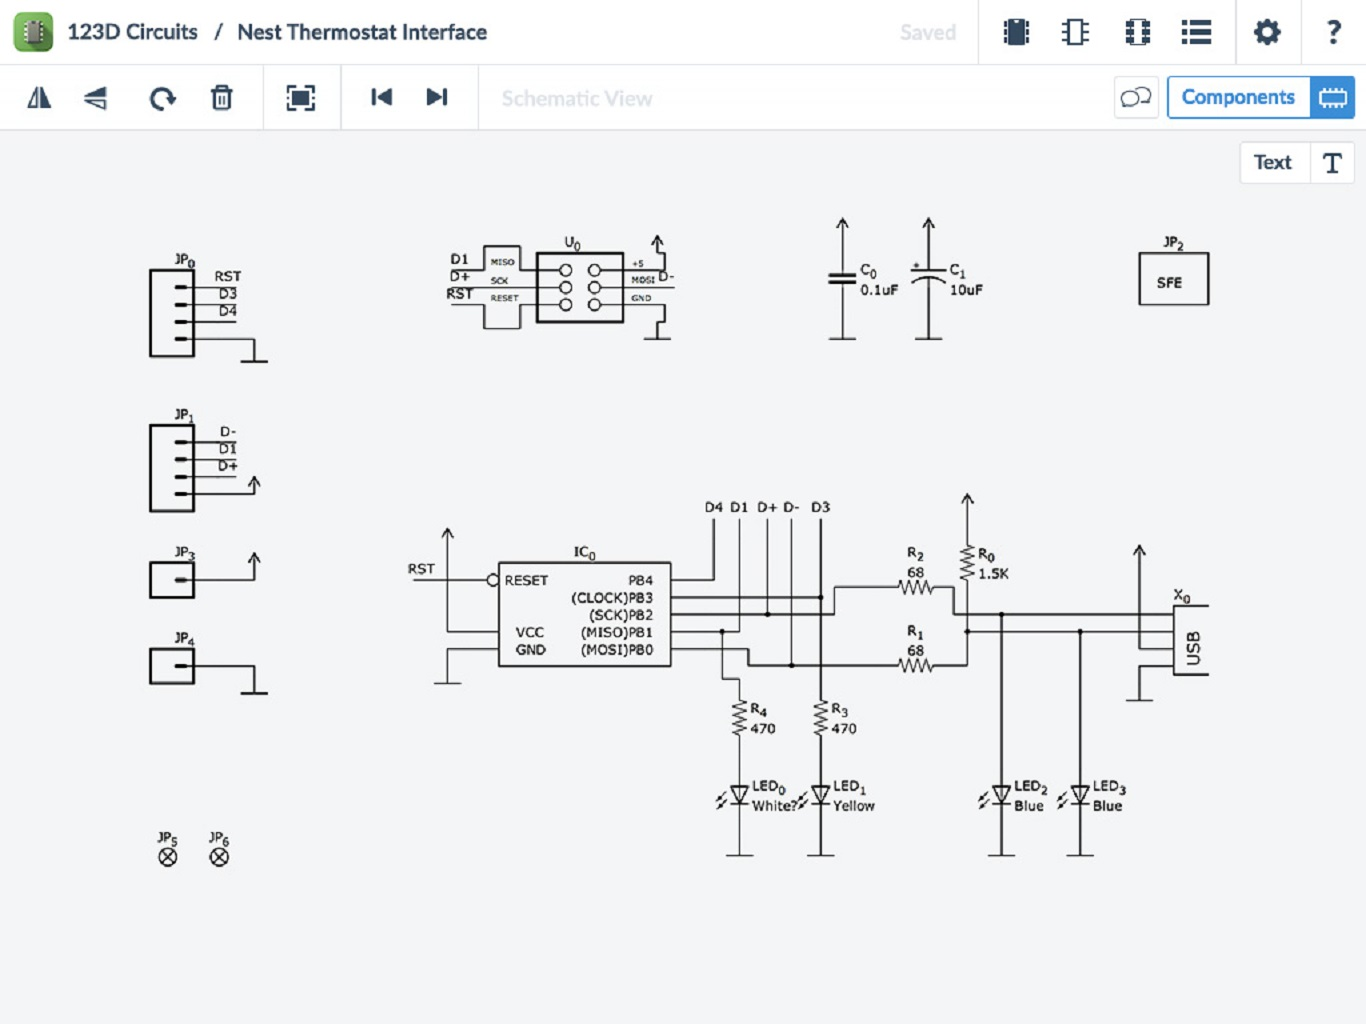 Autodesk® 123D® Circuits for Windows 10